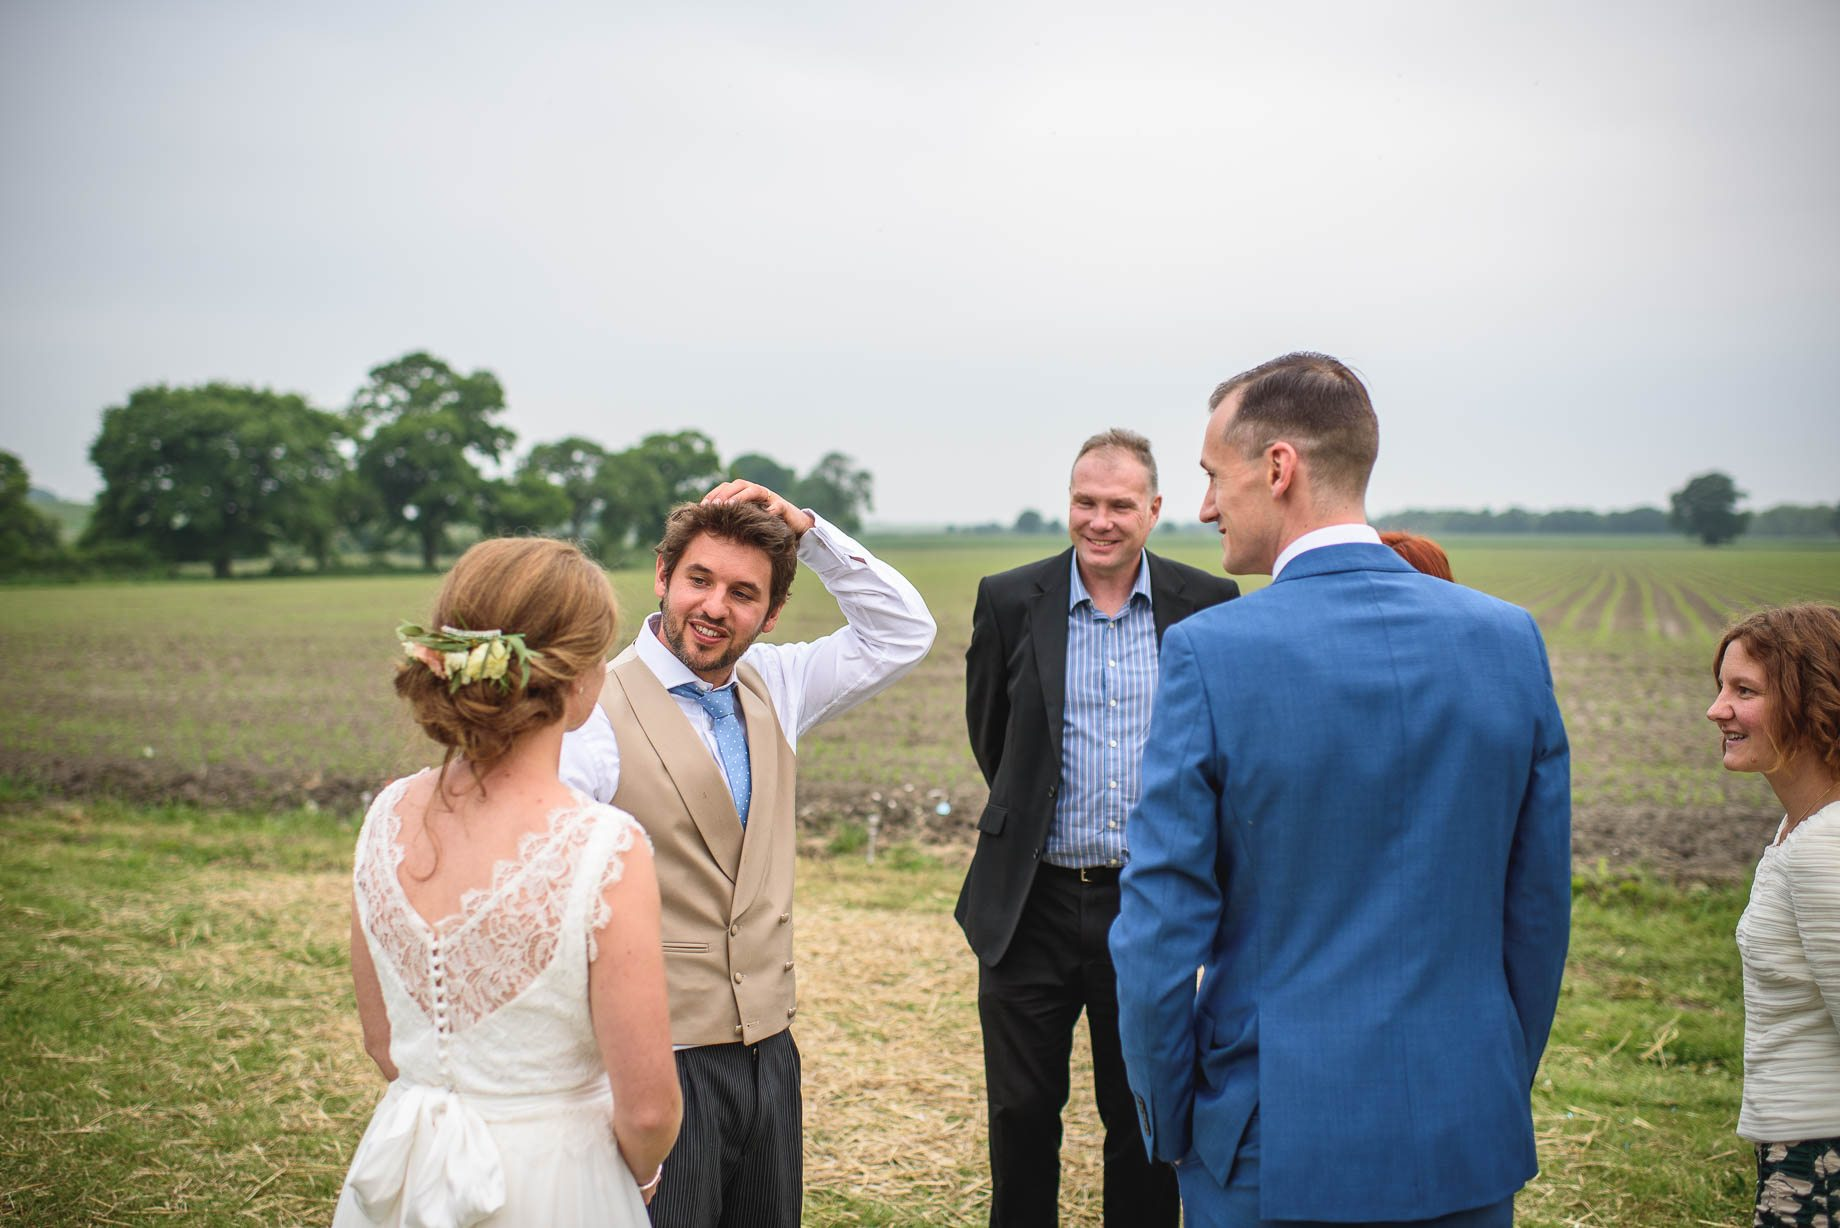 Wiltshire wedding photography by Guy Collier - Lucie and Matt (175 of 198)